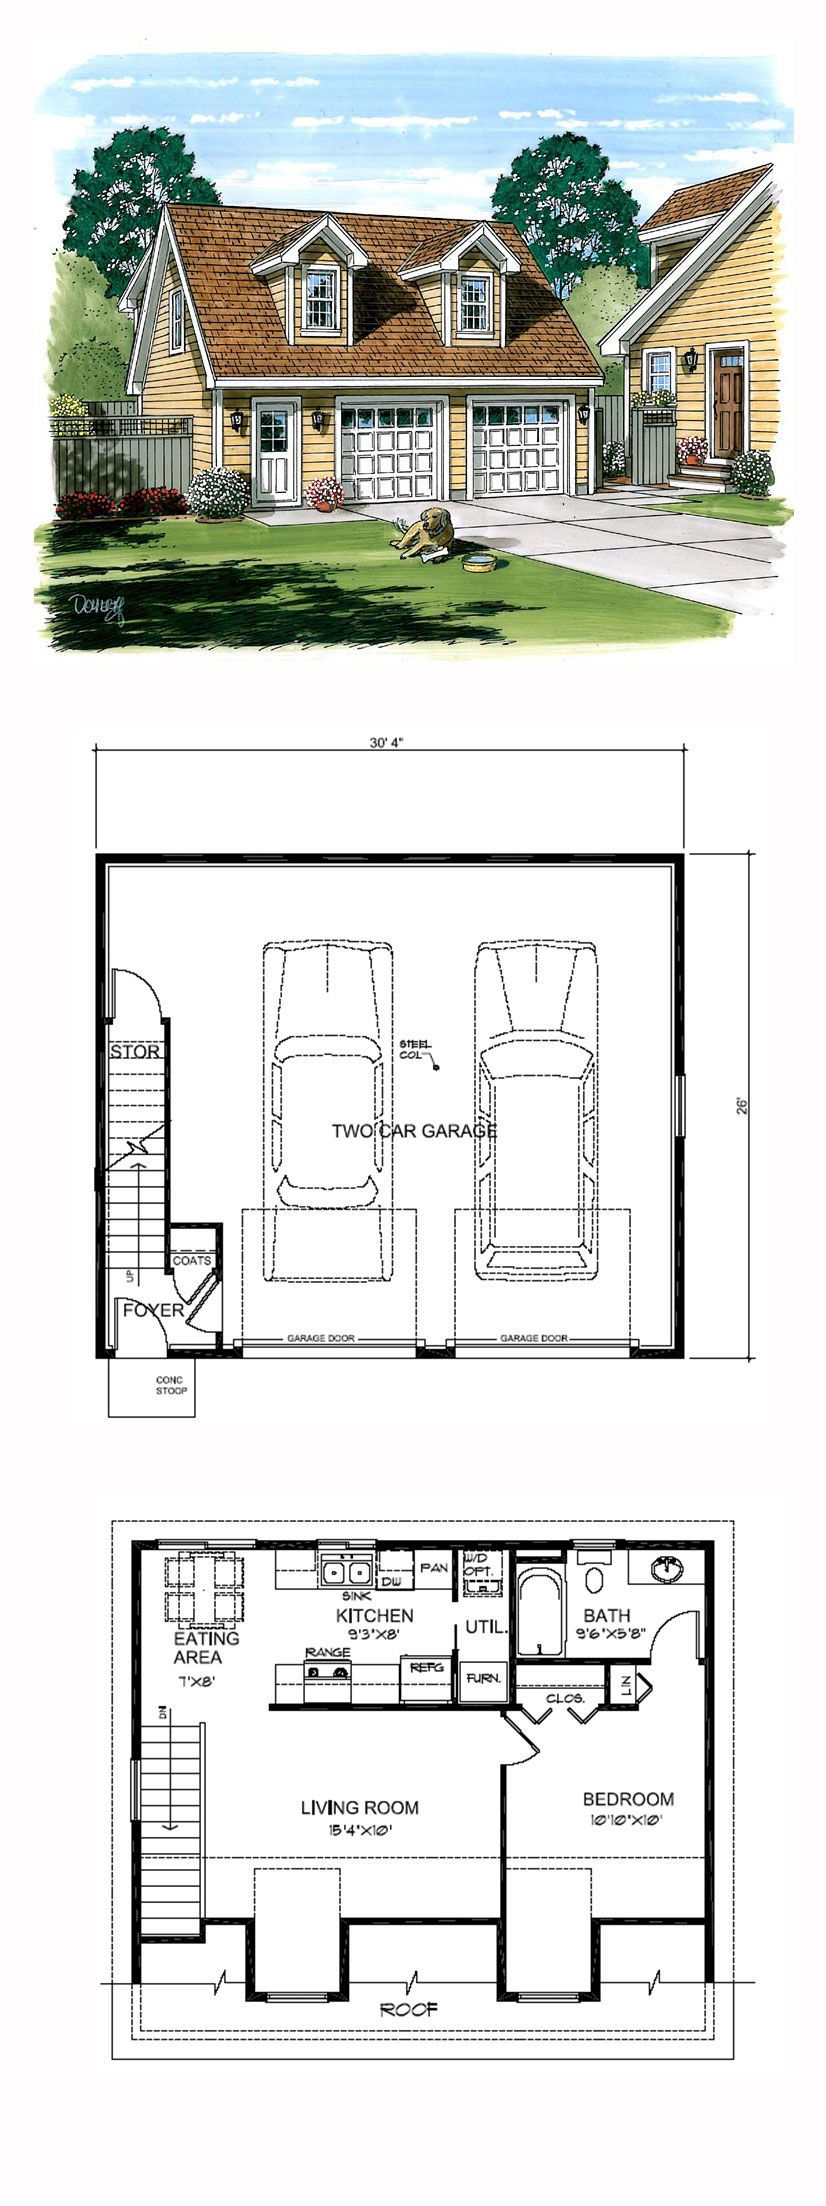 Garage apartment plan 30030 total living area 687 sq for 1 bedroom garage apartment